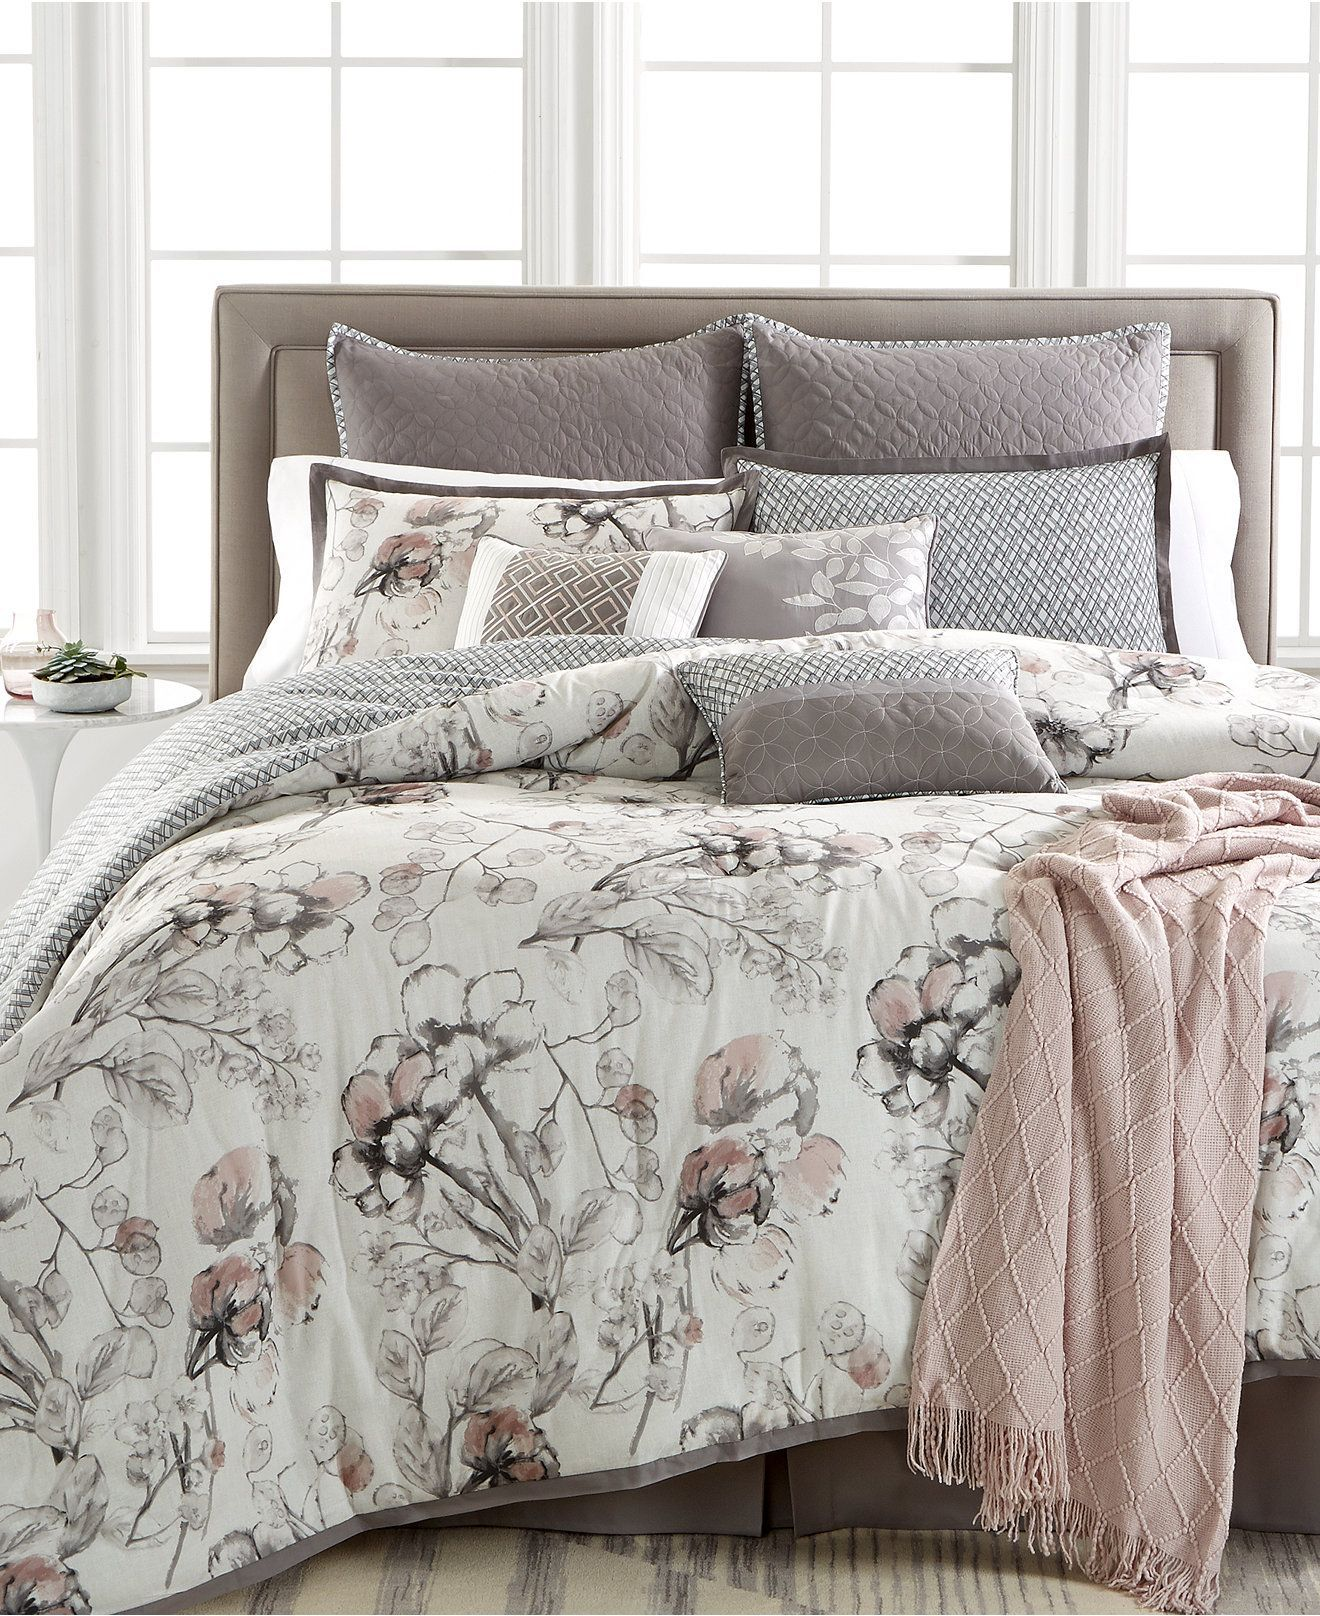 Kelly Ripa Home Pressed Fl 10 Piece Comforter Sets Only At Macy S Bed In A Bag Bath